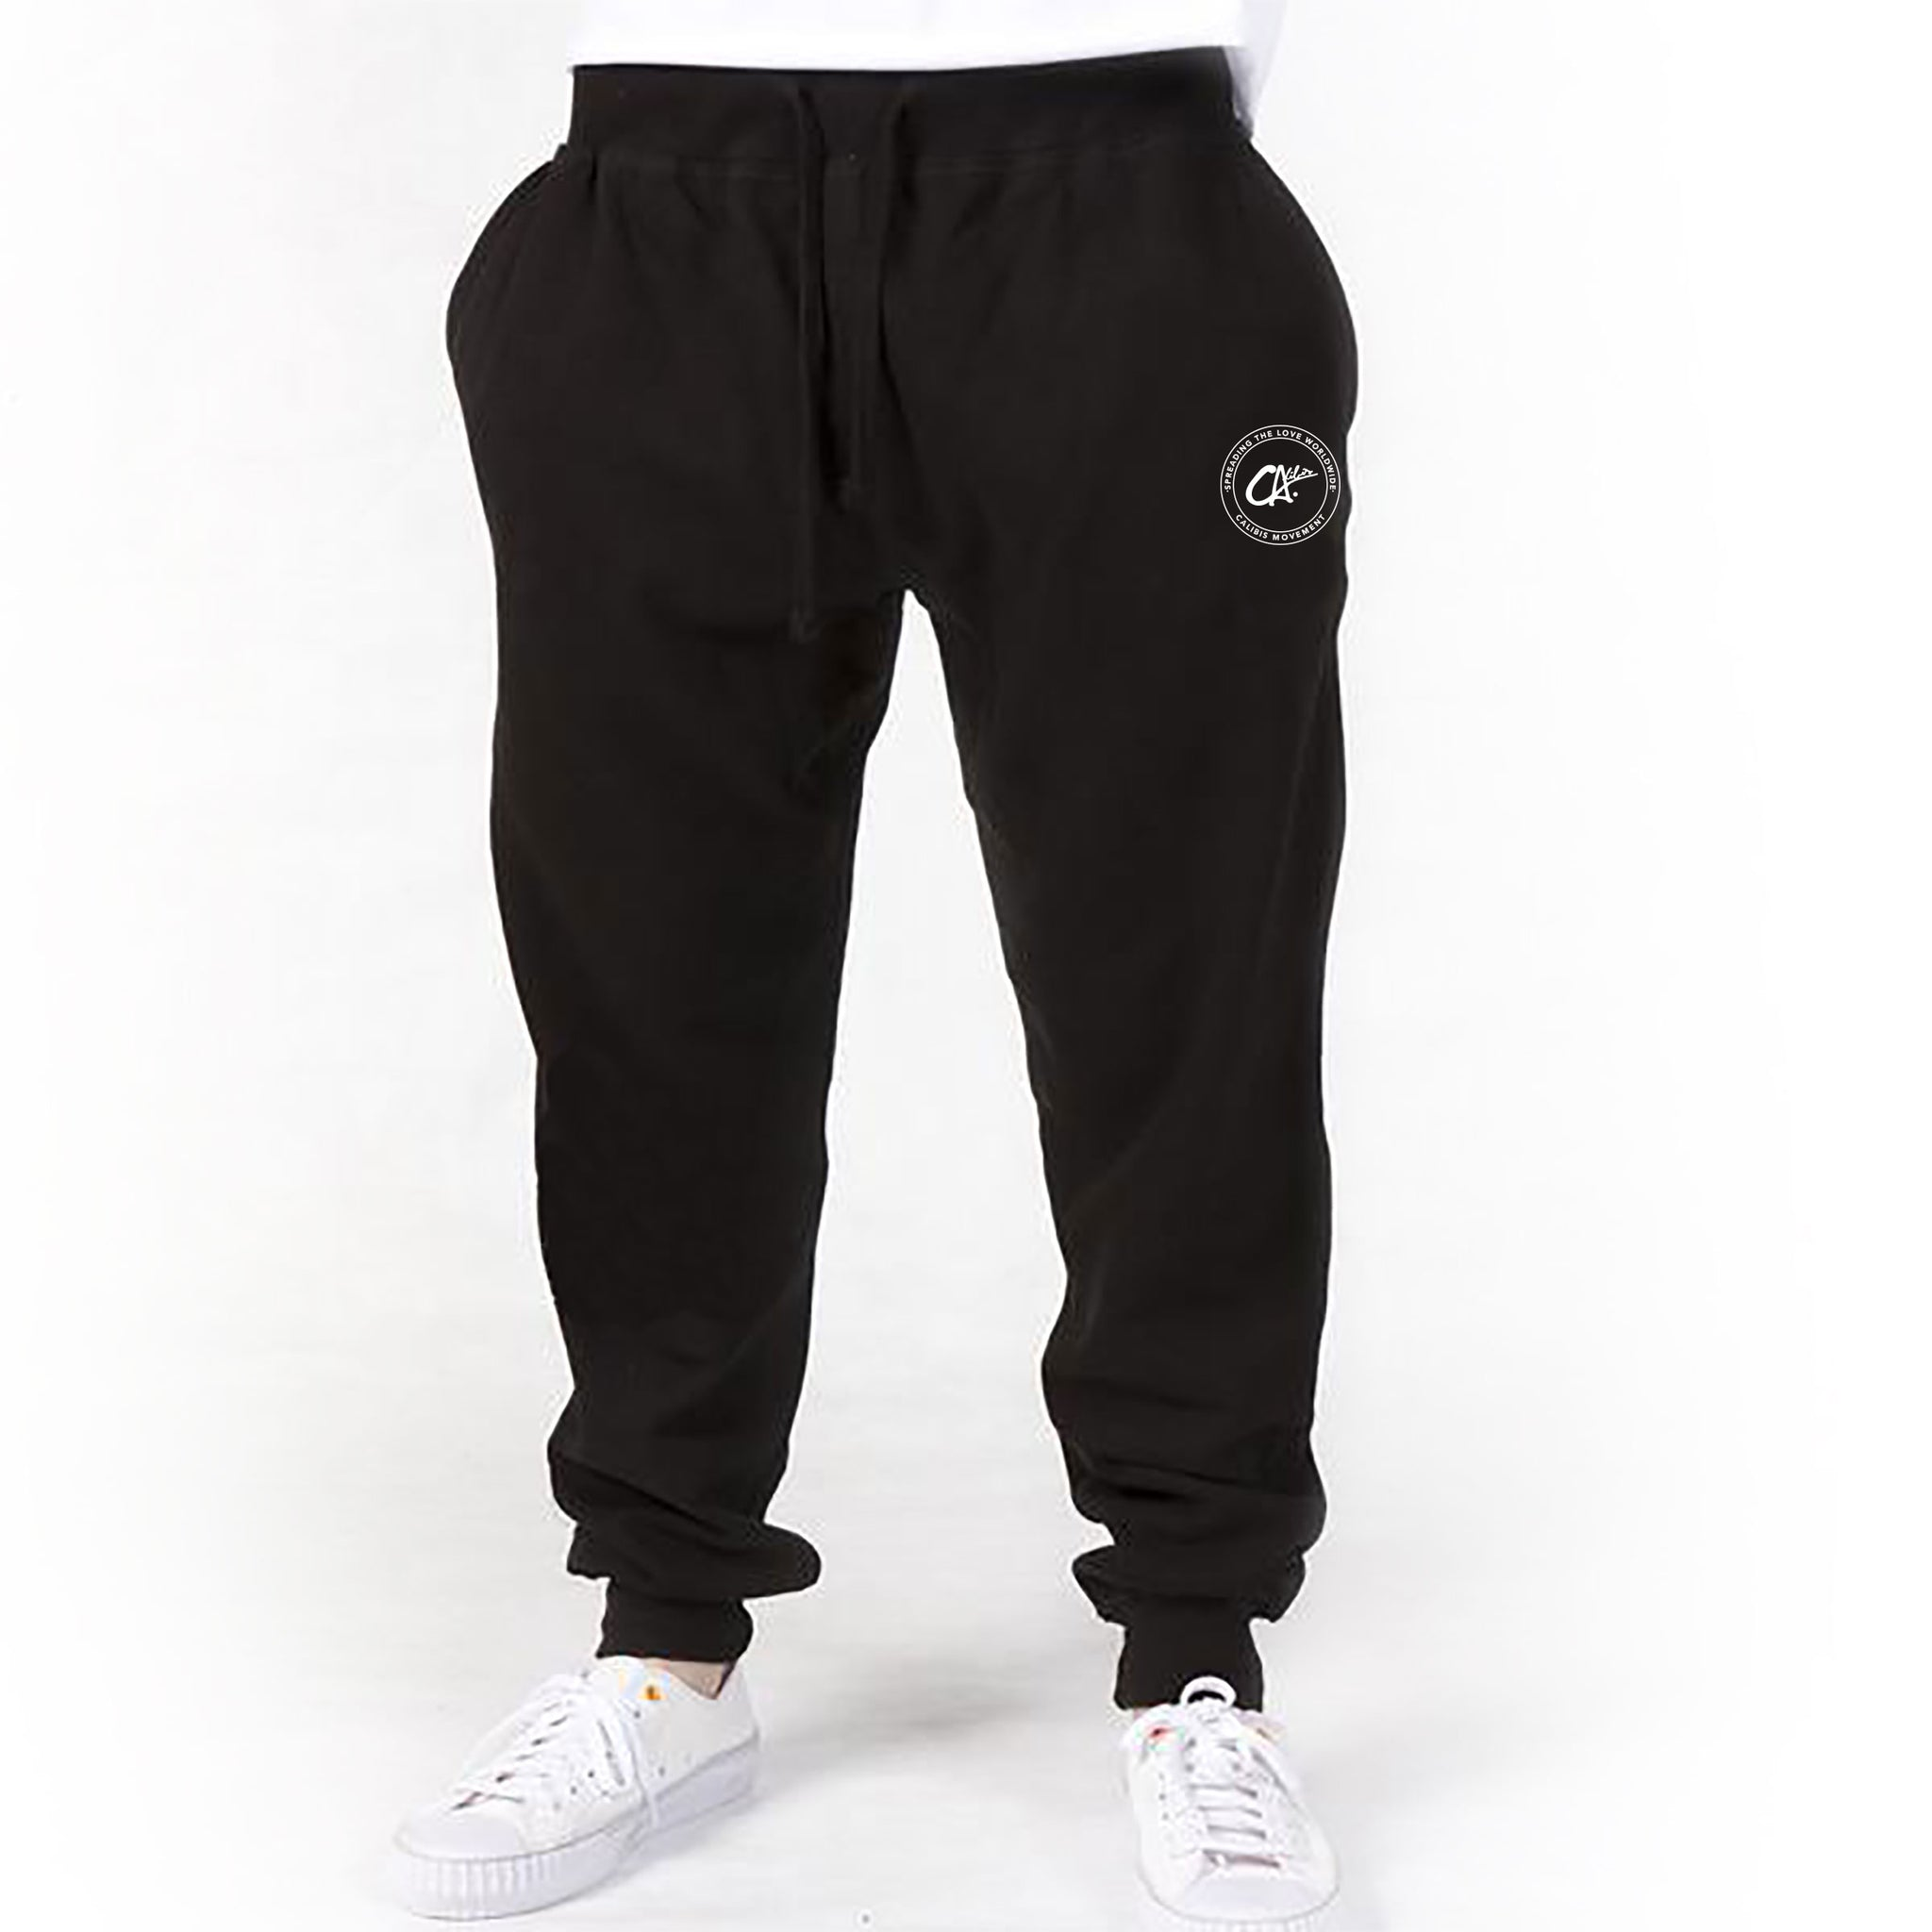 Worldwide Joggers by Calibis Clothing